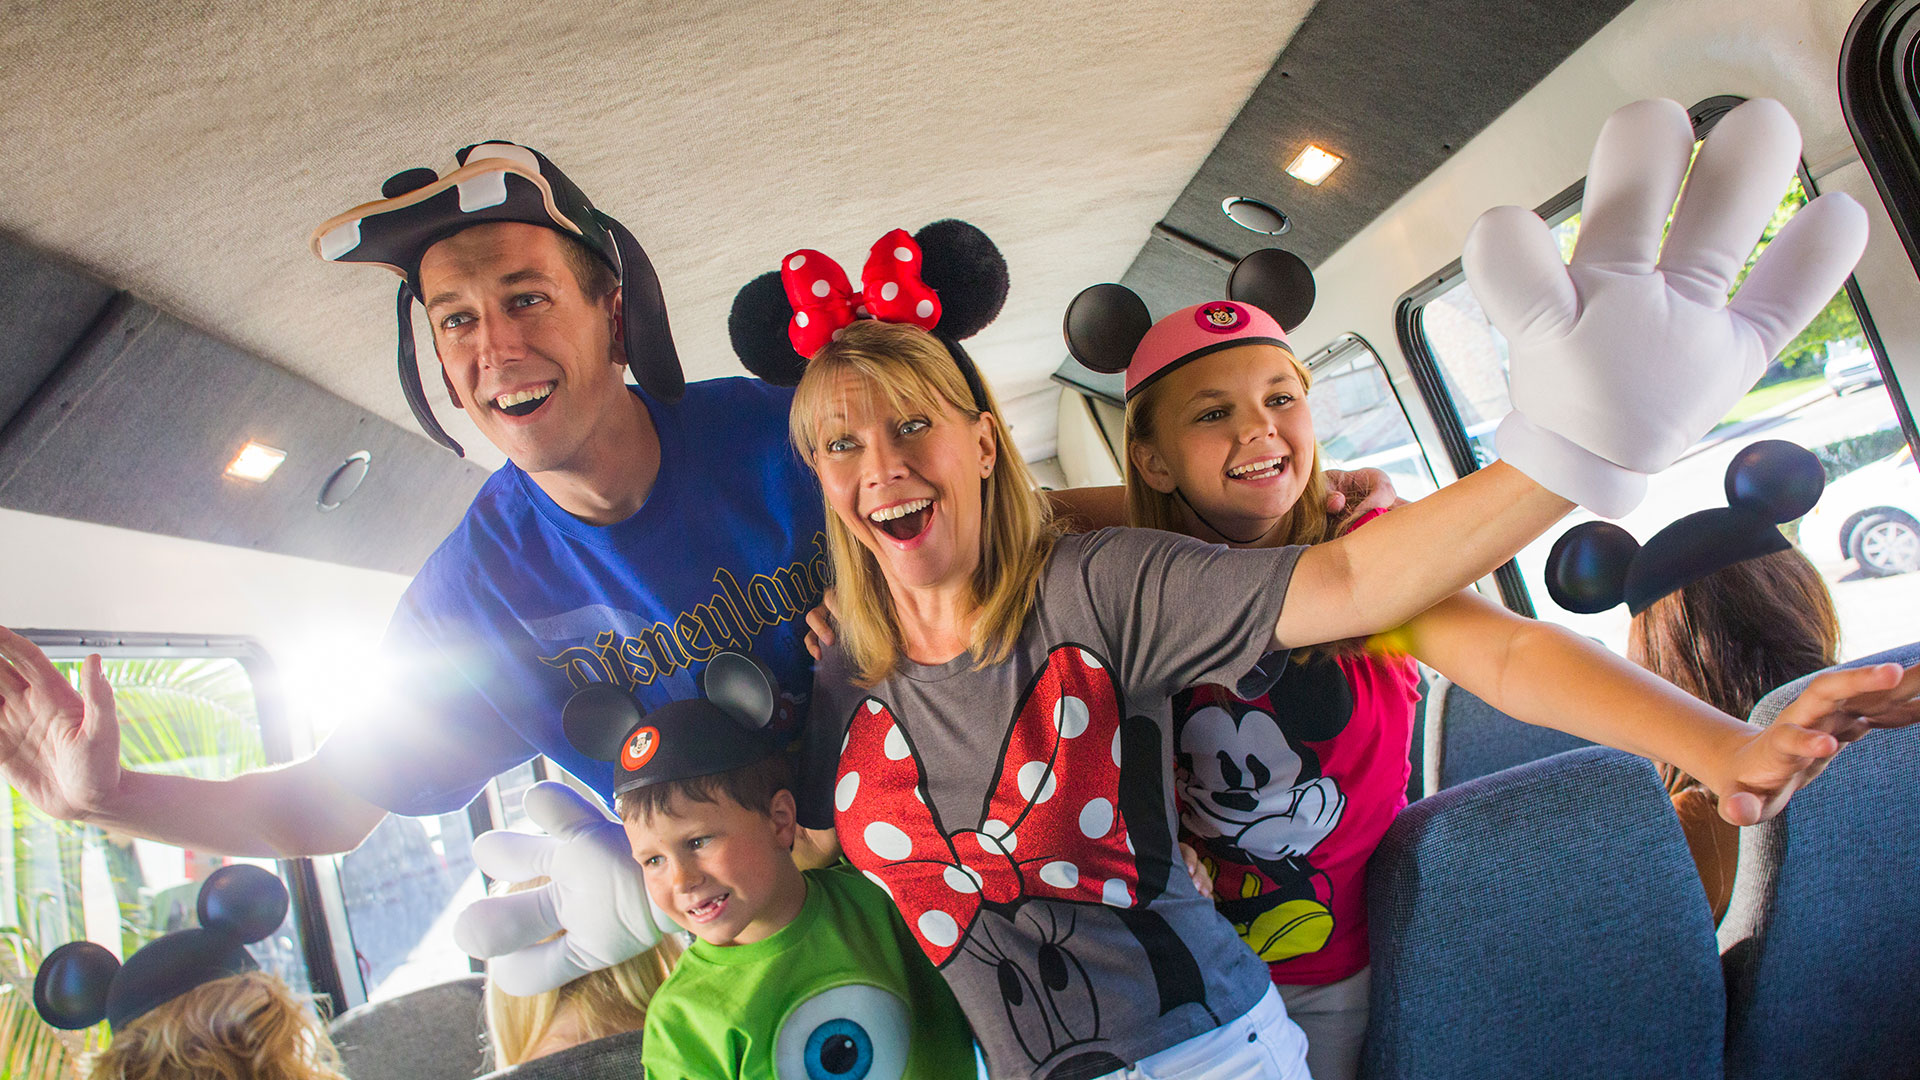 Family going to Disneyland